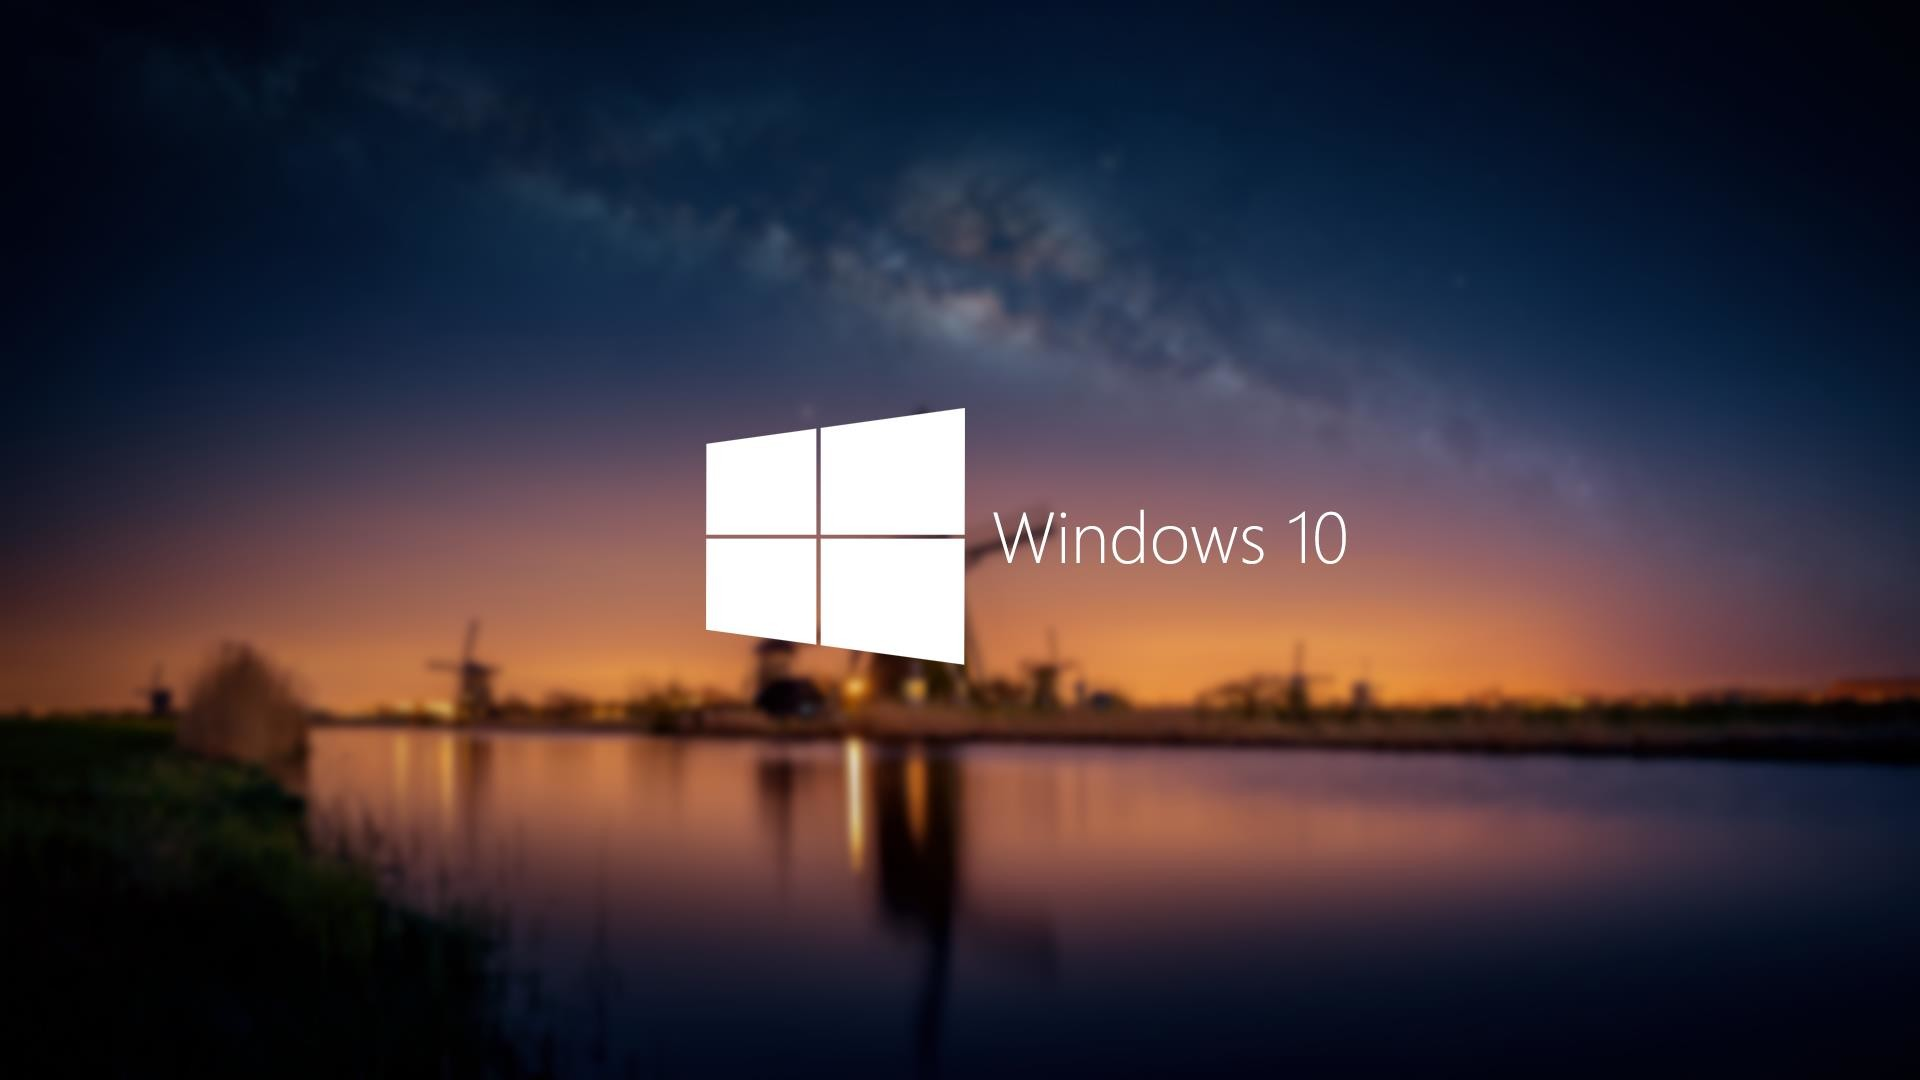 2560x1600 Windows 10 Wallpaper Hd Free Download 258970 Resolation 1024x768 File Size